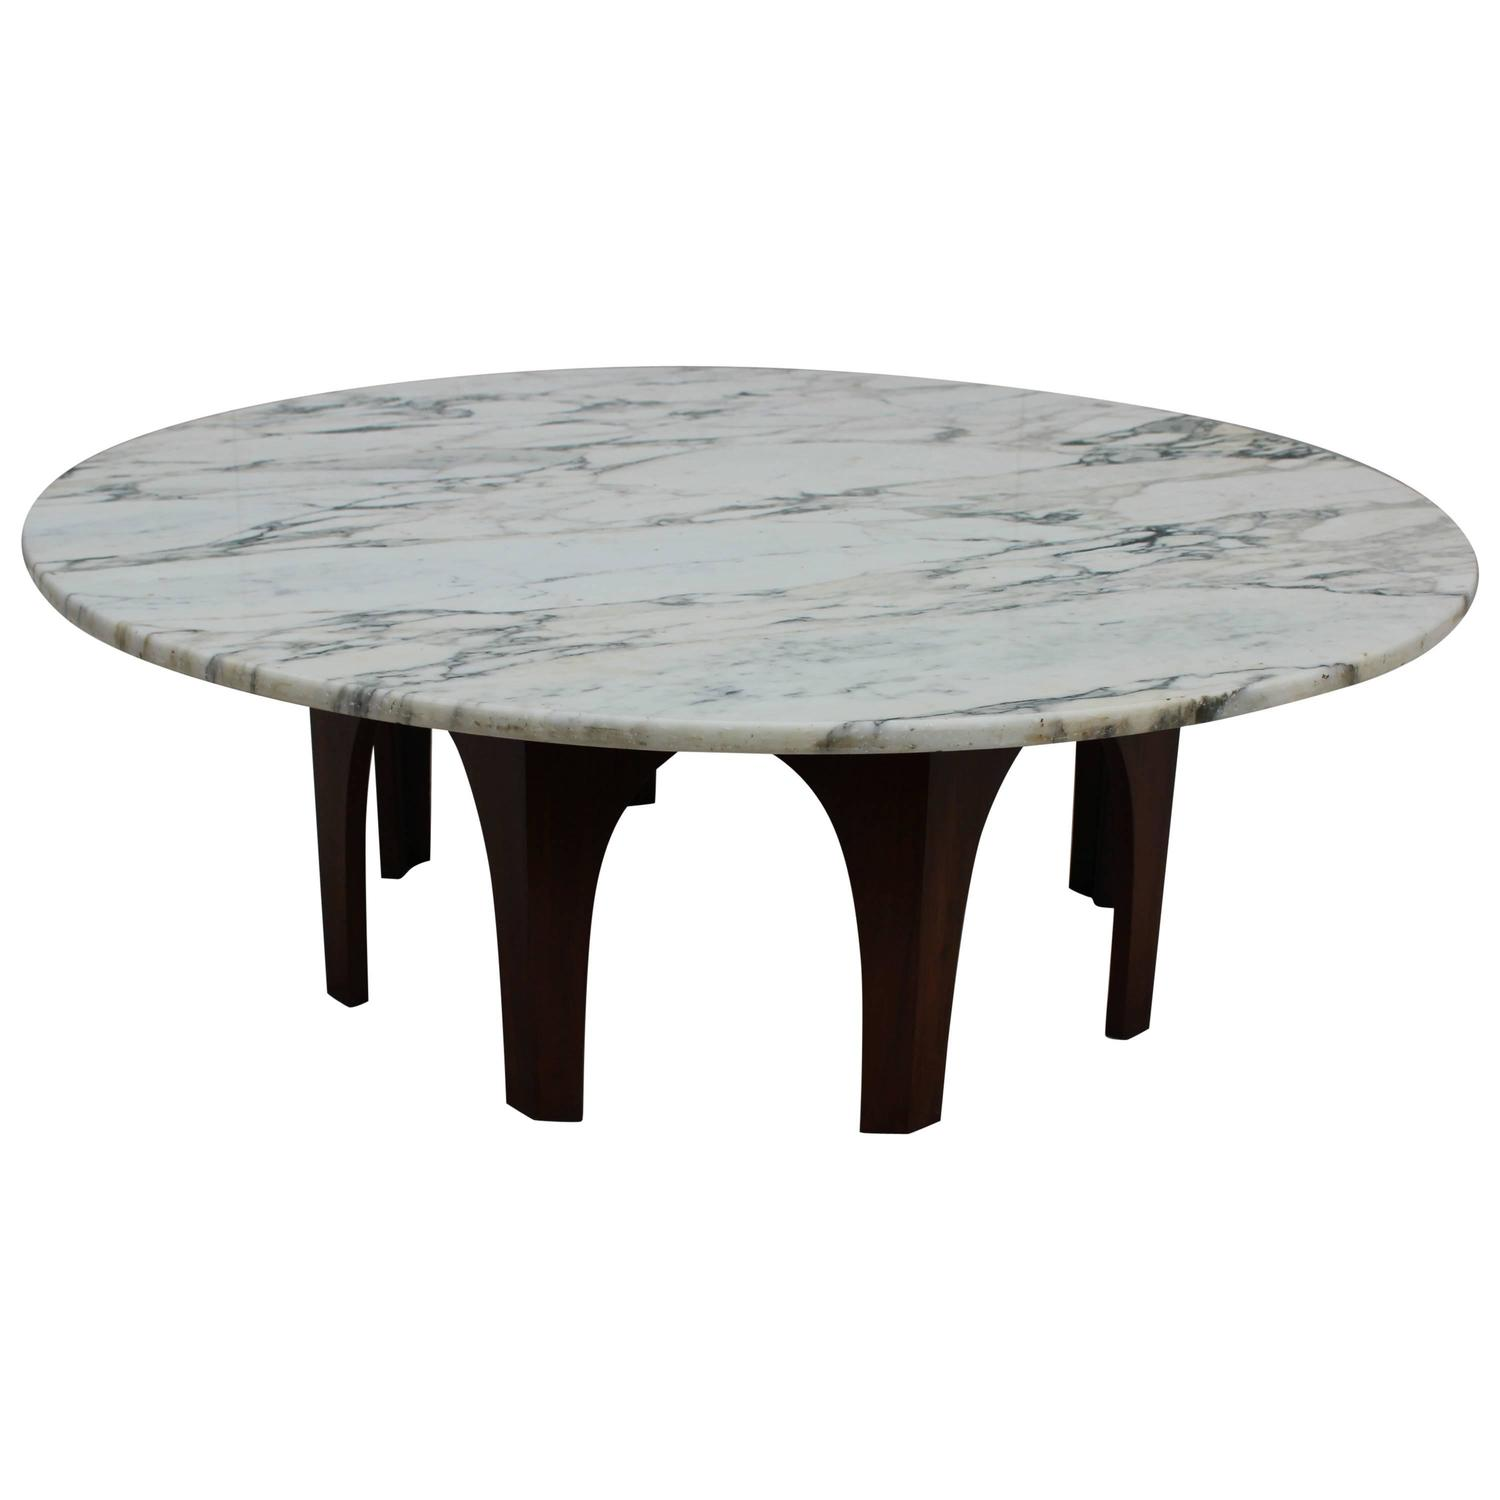 Harvey Probber Attributed Carrara Marble Coffee Table At 1stdibs